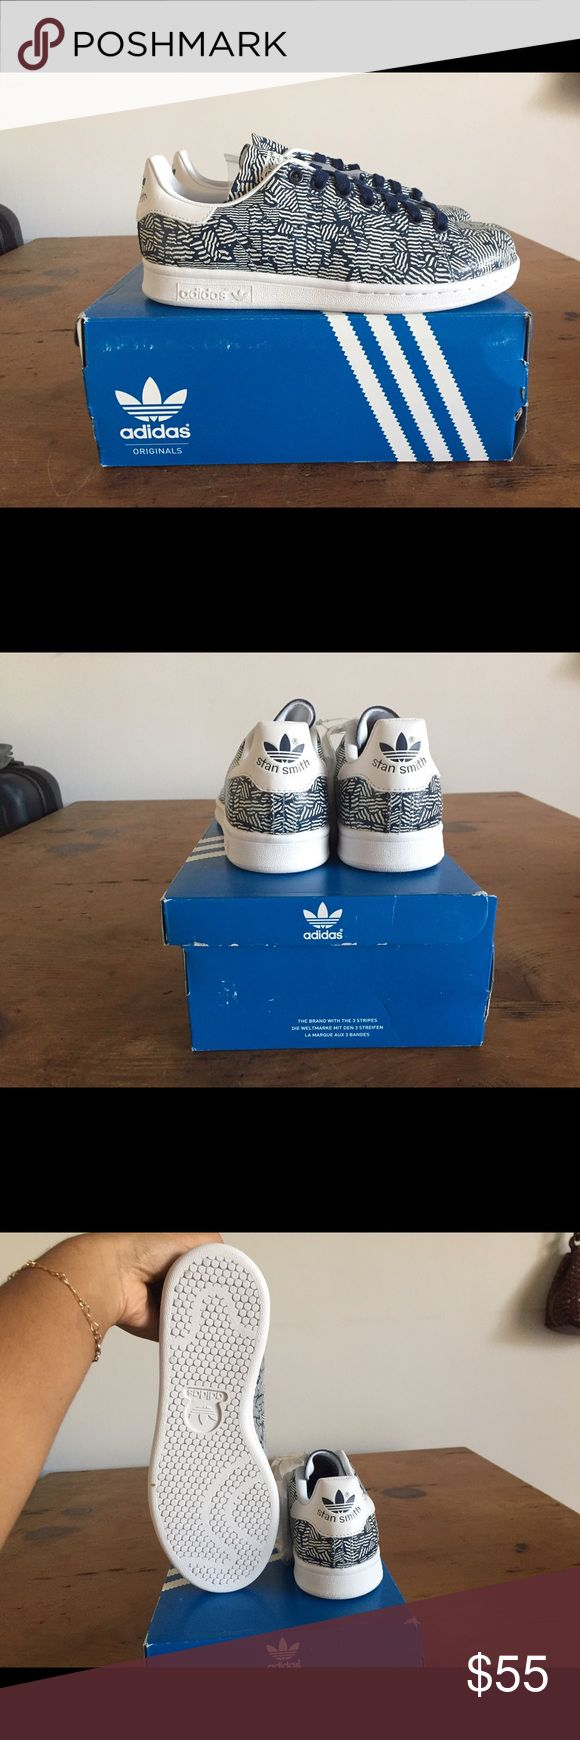 STAN SMITH ADIDAS STAN SMITH ADIDAS - leather navy and white. Size 6.5 (I'm a true 7, these run a little big) - brand new, never worn. Email for inquiries kimmyscloset7@yahoo.com Adidas Shoes Sneakers